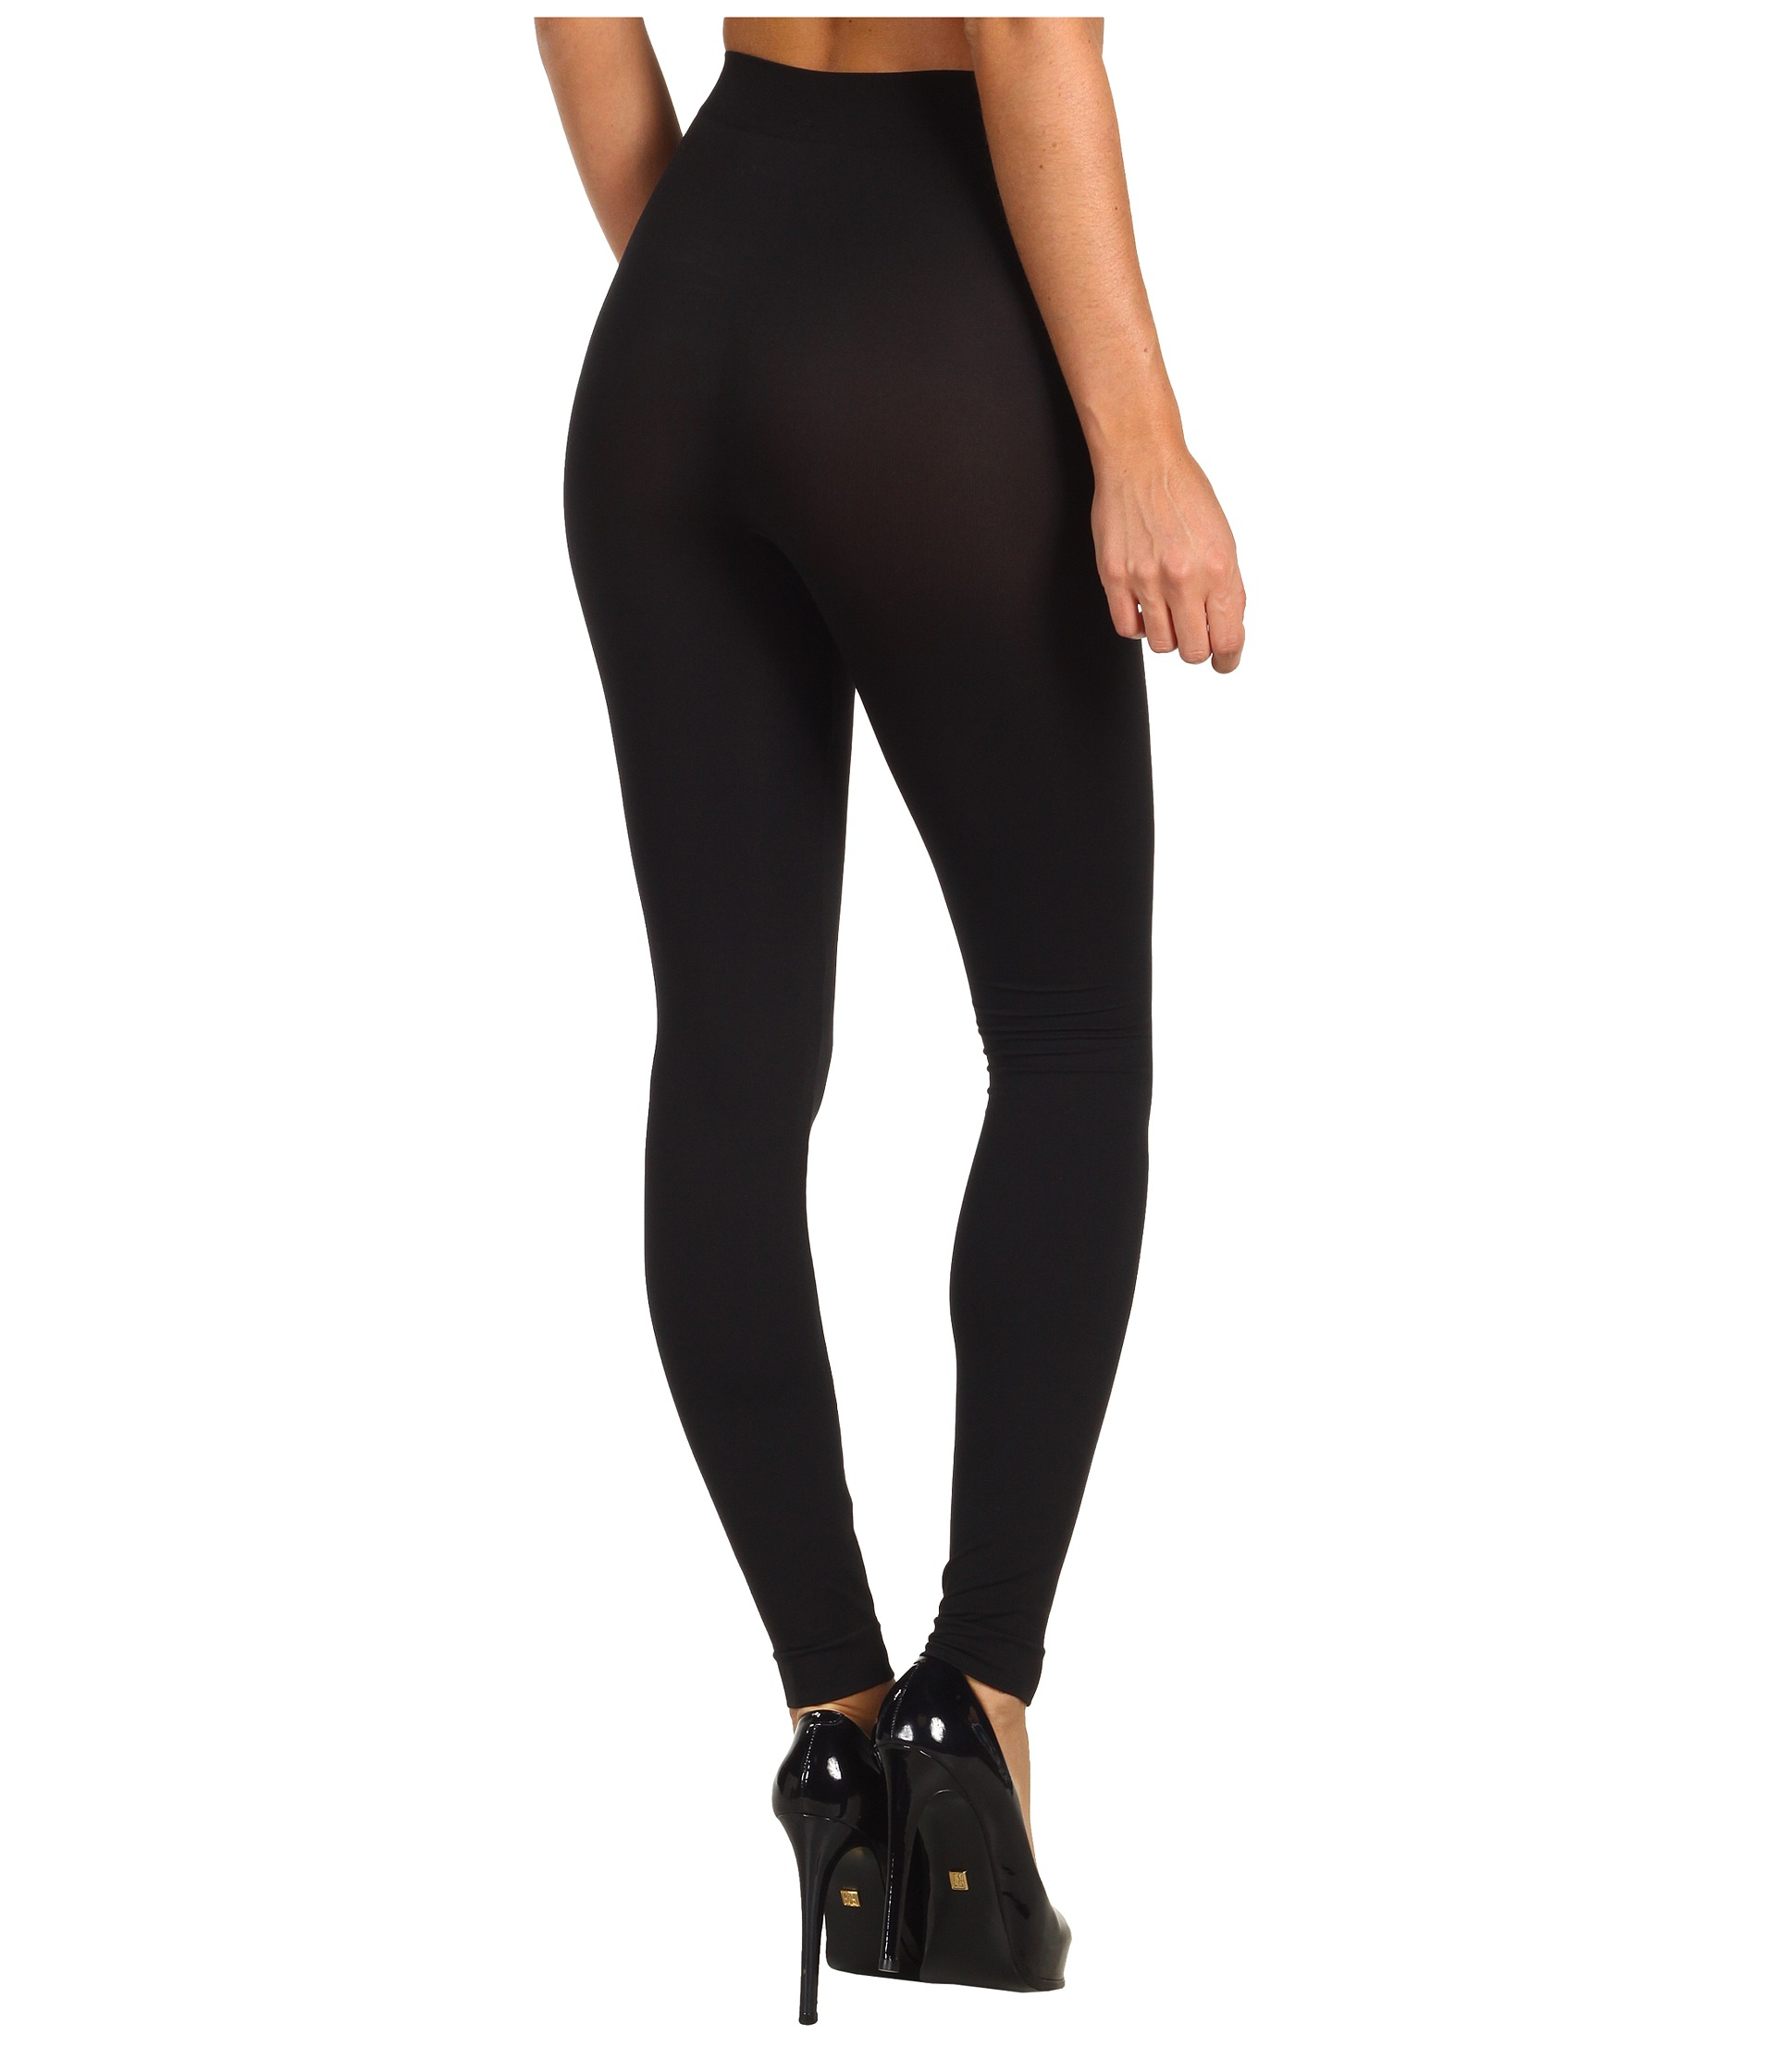 Simply put, JOBST are known as the #1 Physician Recommended compression stockings or Free Ground Shipping· JOBST Relief on Sale· Large selection of JOBST®· Comfort, Health and Style.